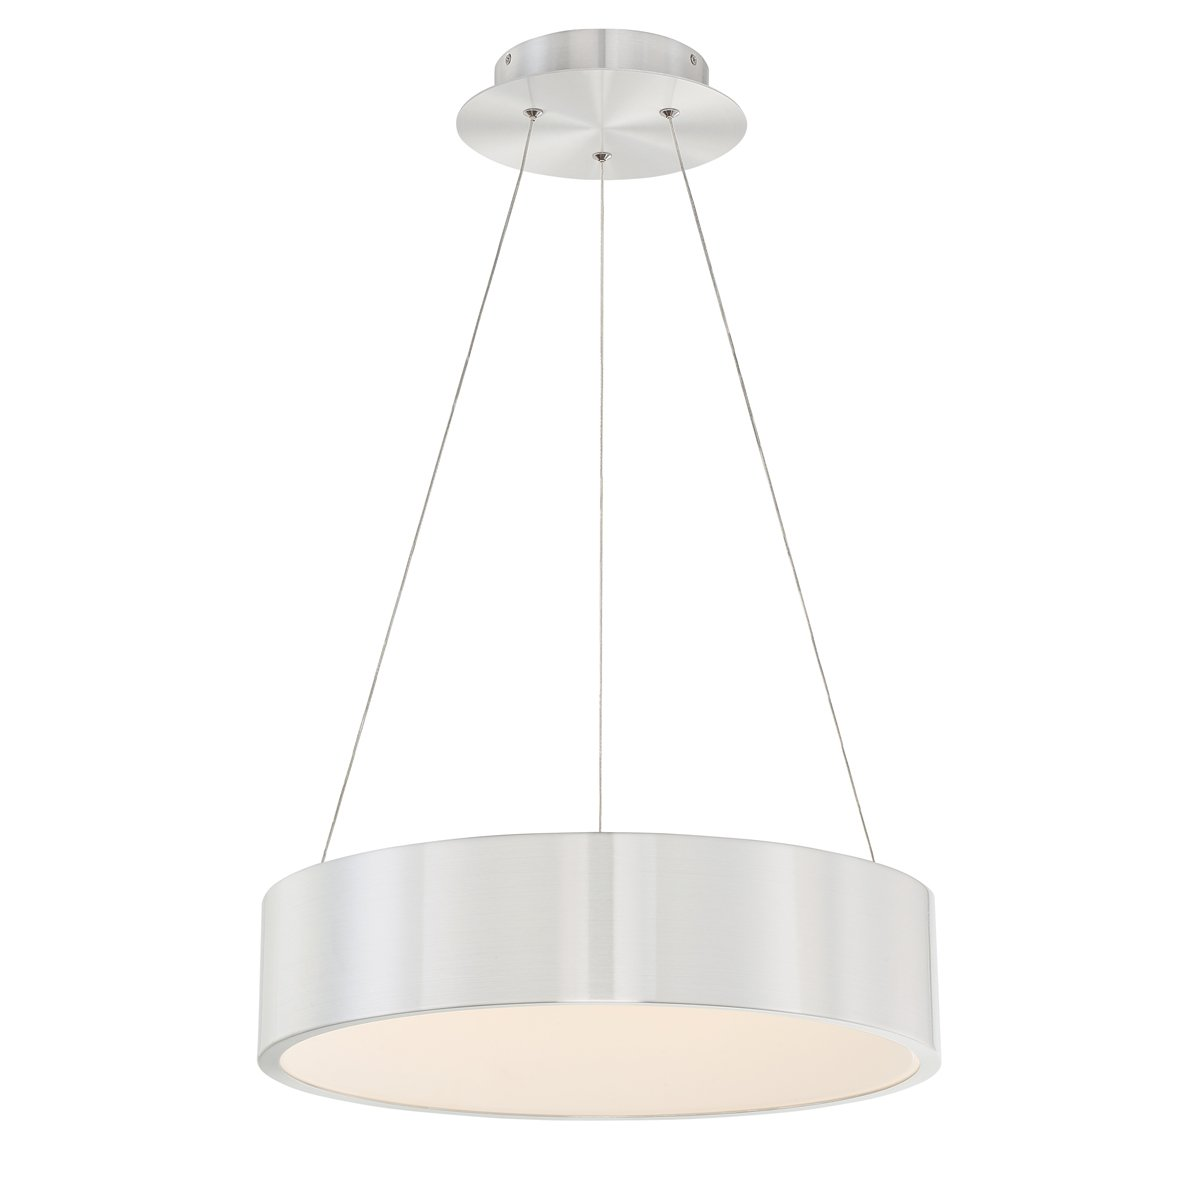 WAC Lighting PD-33718-AL Corso 18in LED Pendant, 18 Inches, Brushed Aluminum